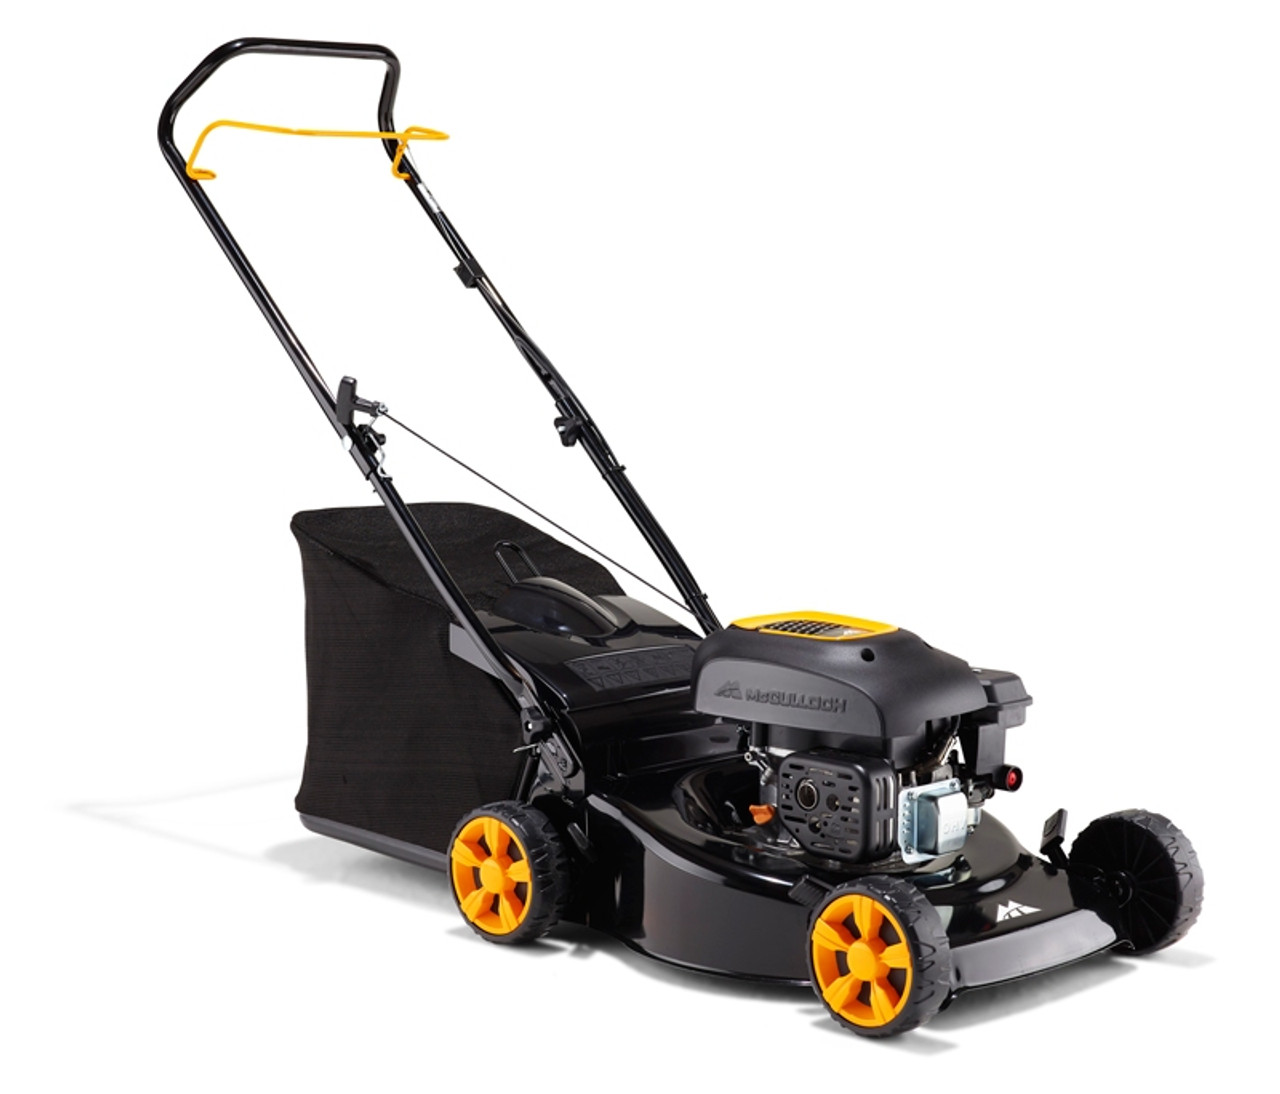 McCulloch M40 Lawnmower